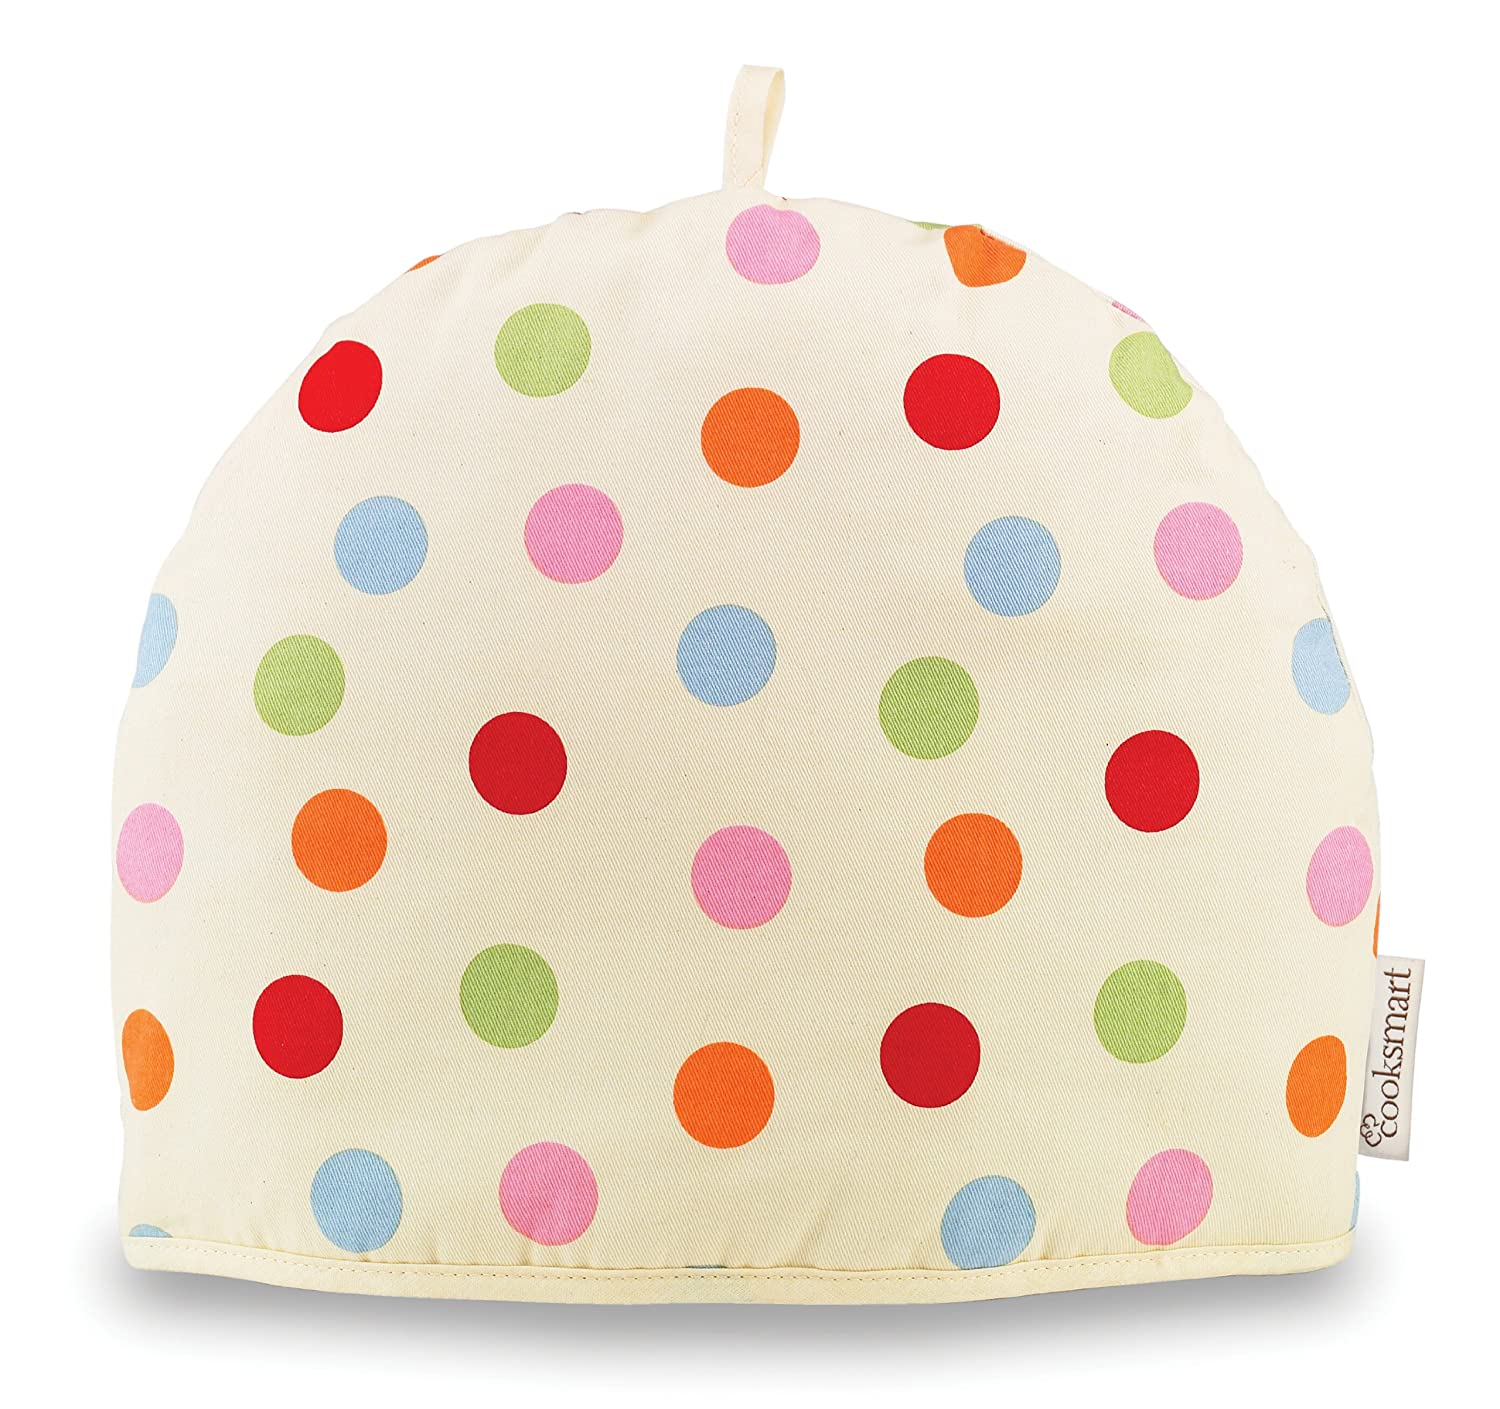 Cooksmart Spots Tea Cosy 8406